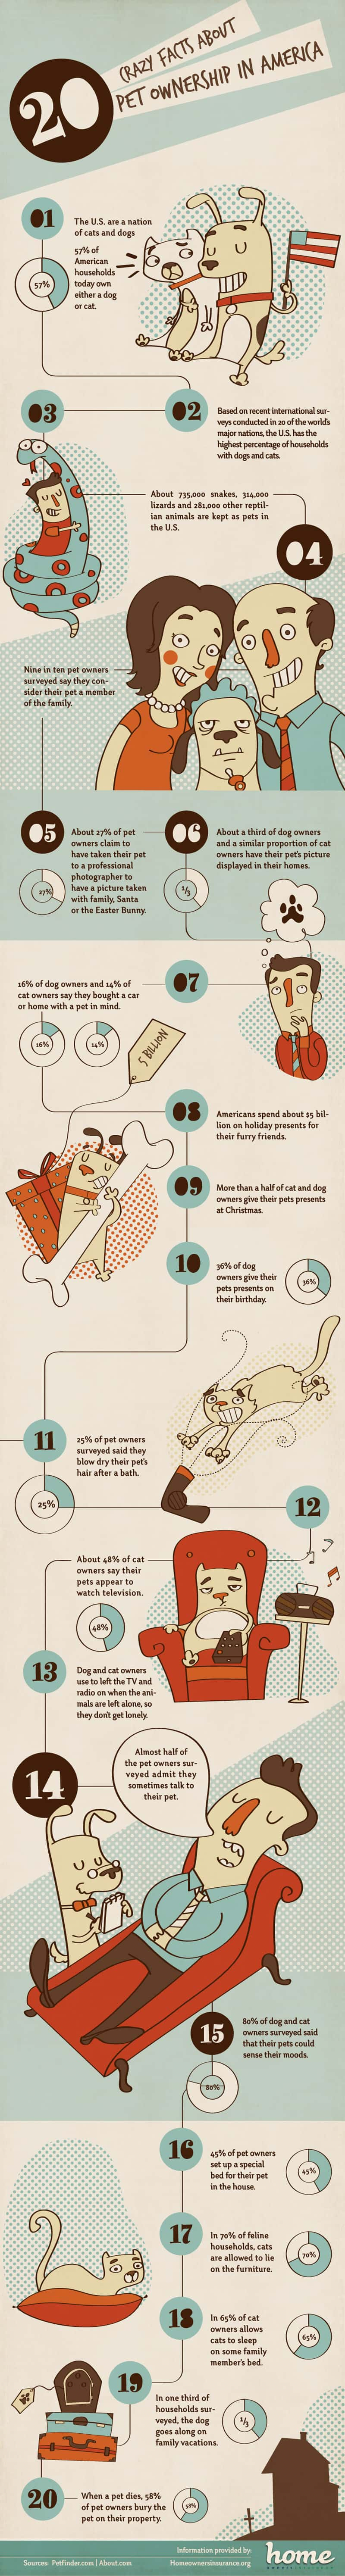 crazy facts about pet ownership in America